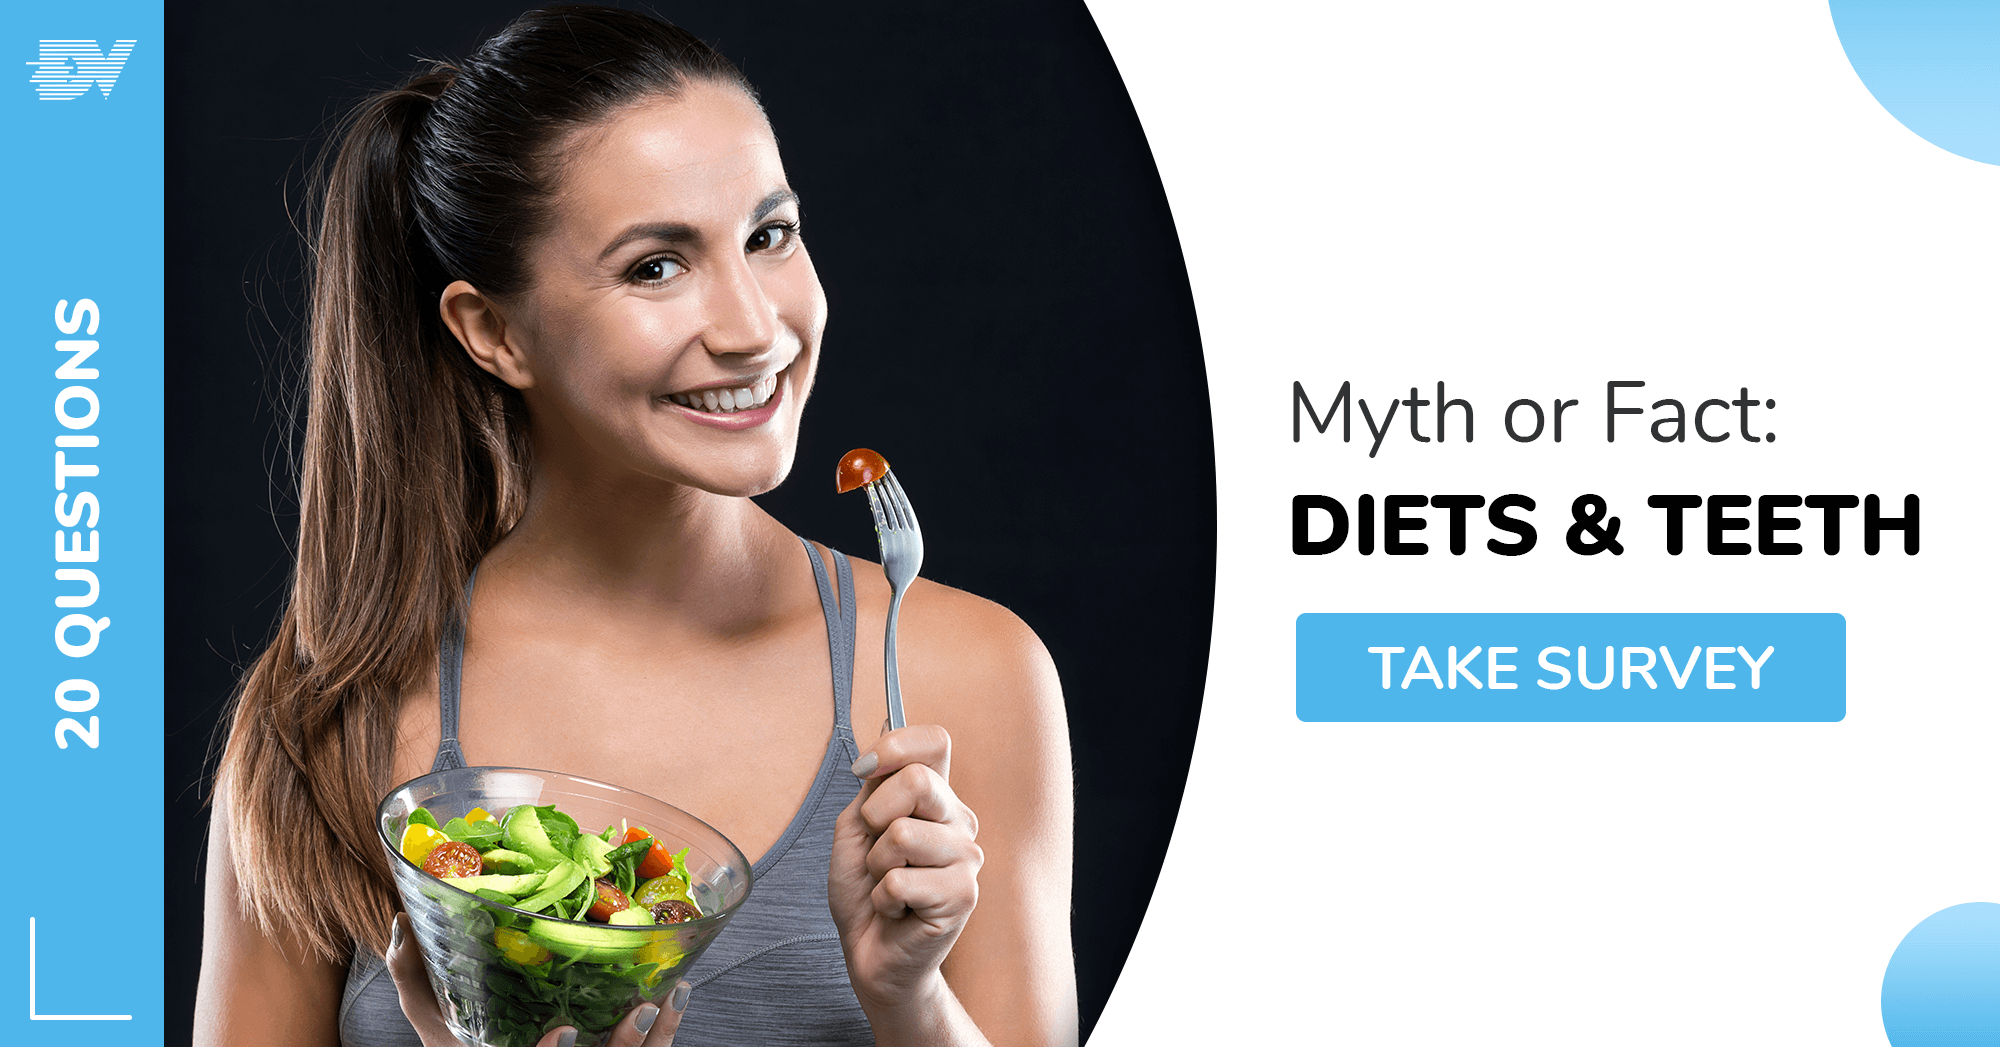 20 myths facts diets oral health soc